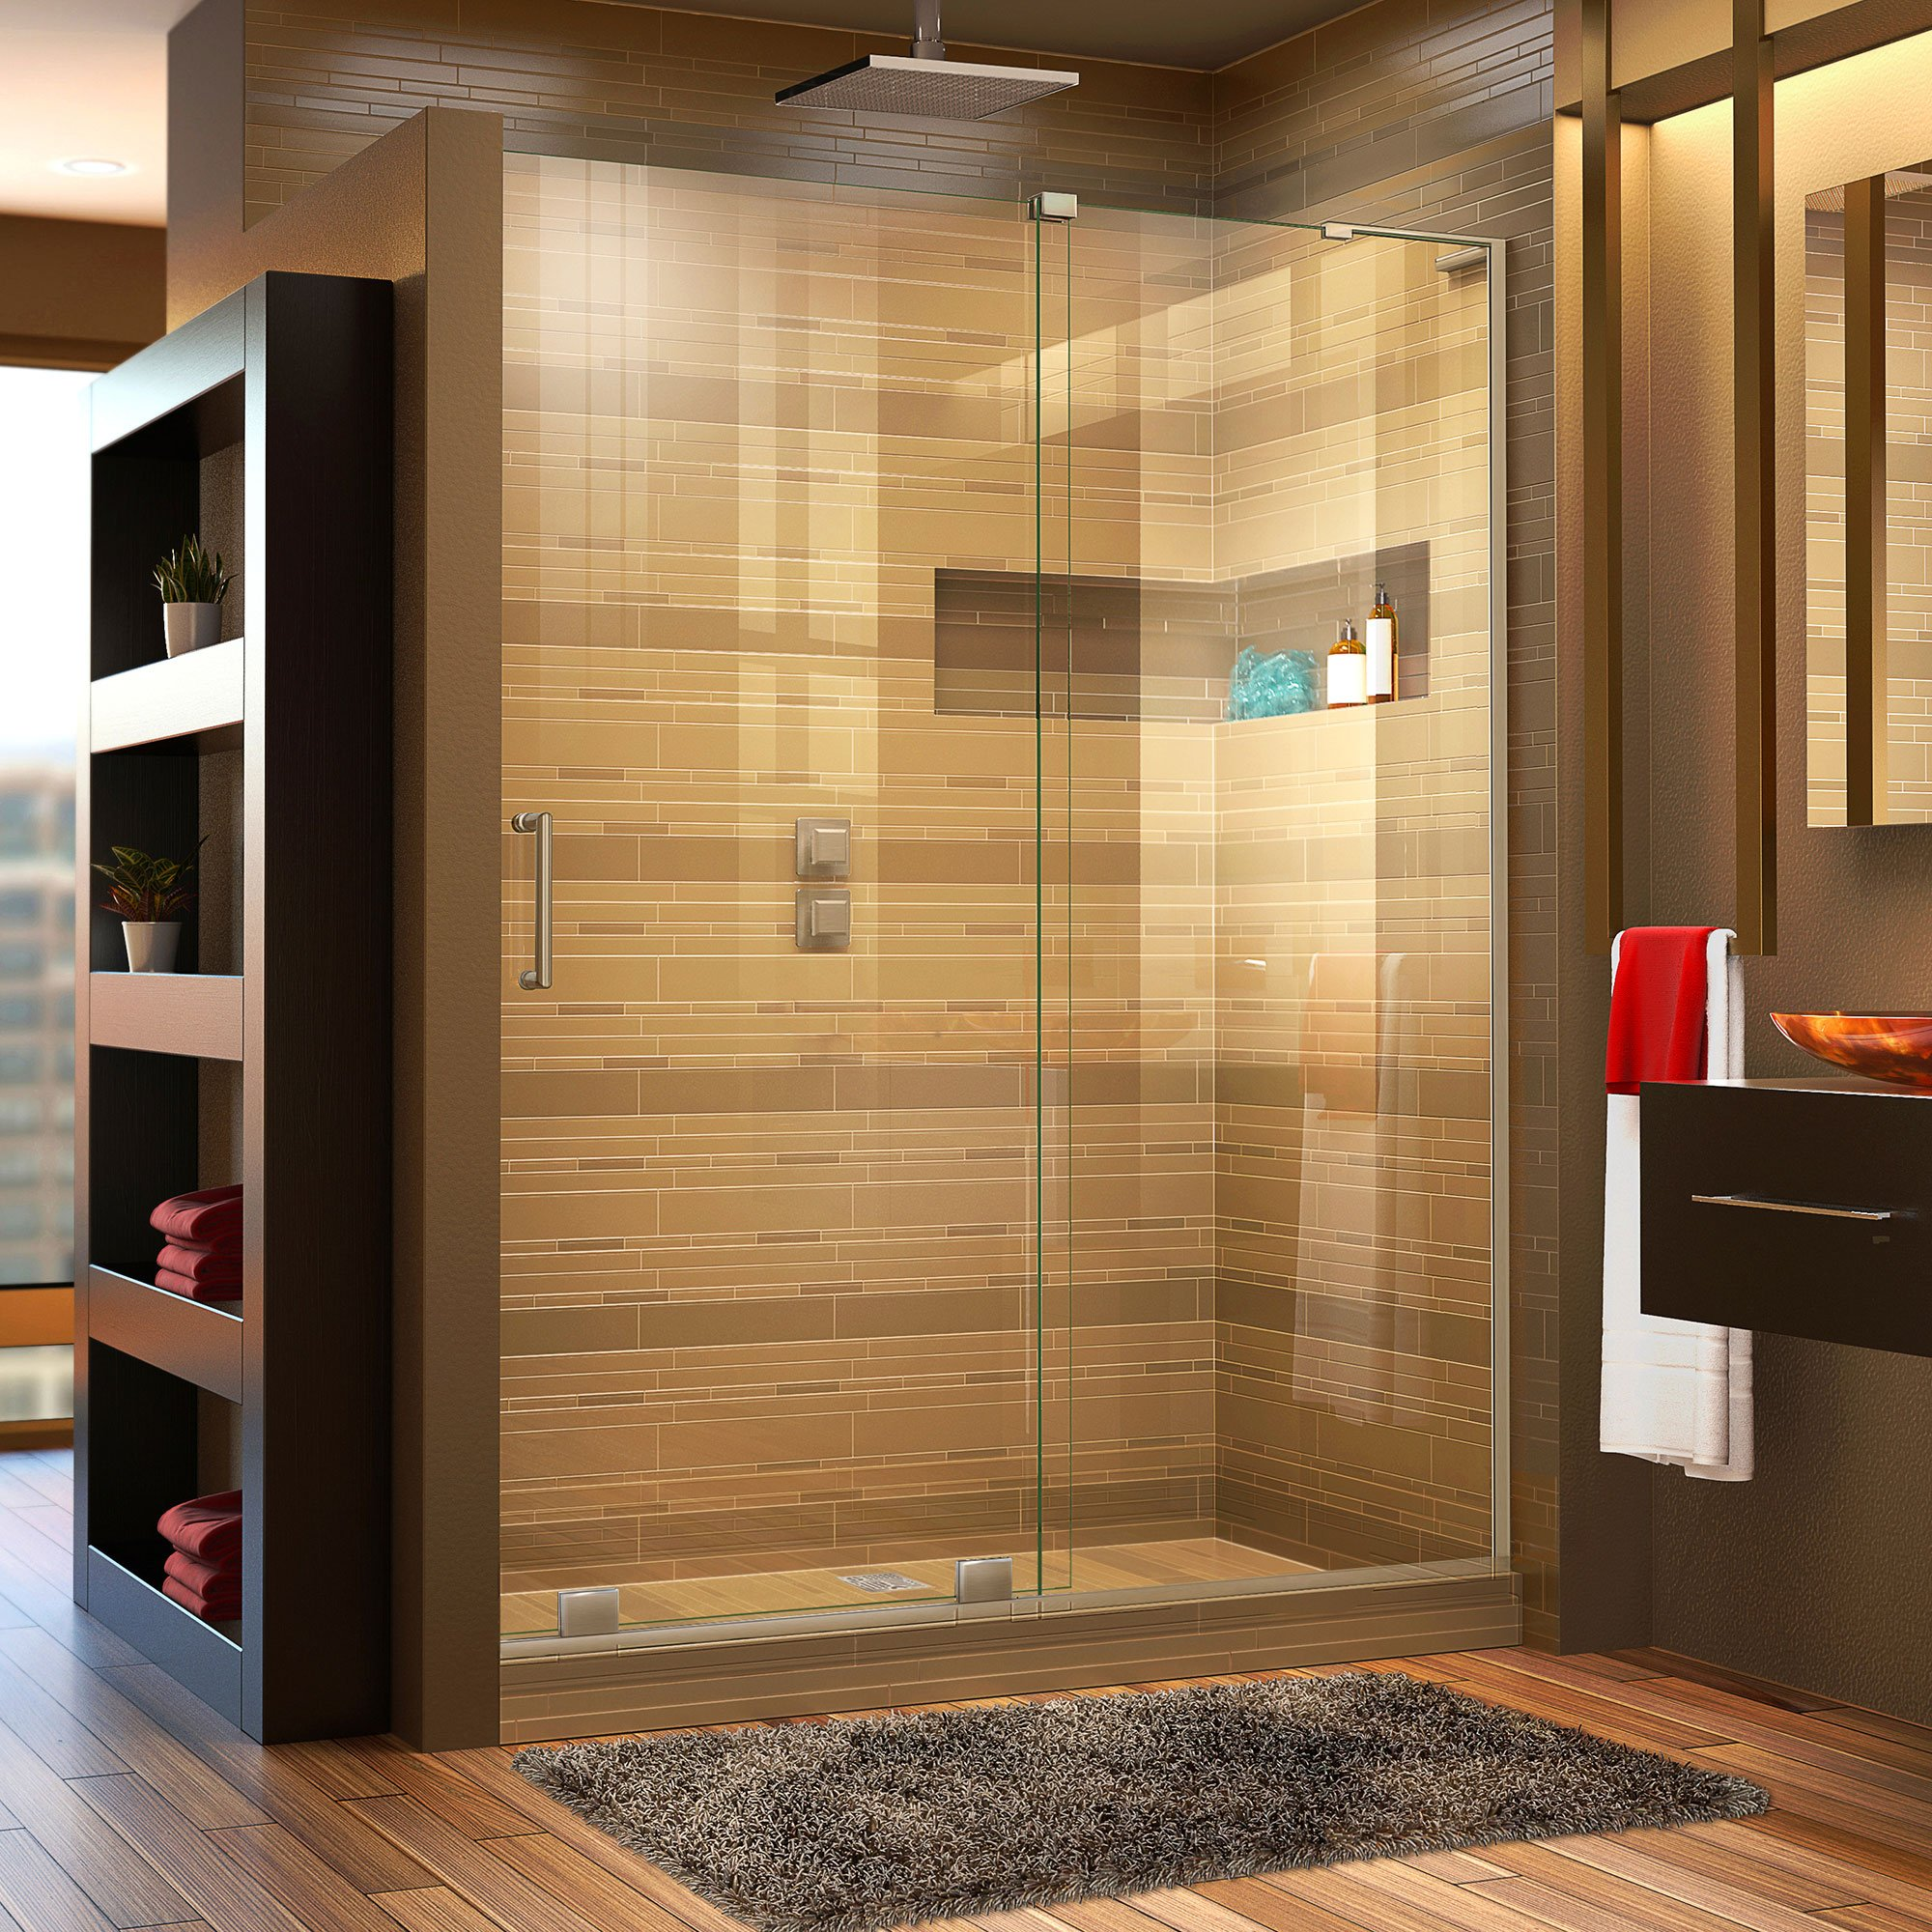 Best Rated in Shower Doors & Helpful Customer Reviews - Amazon.com